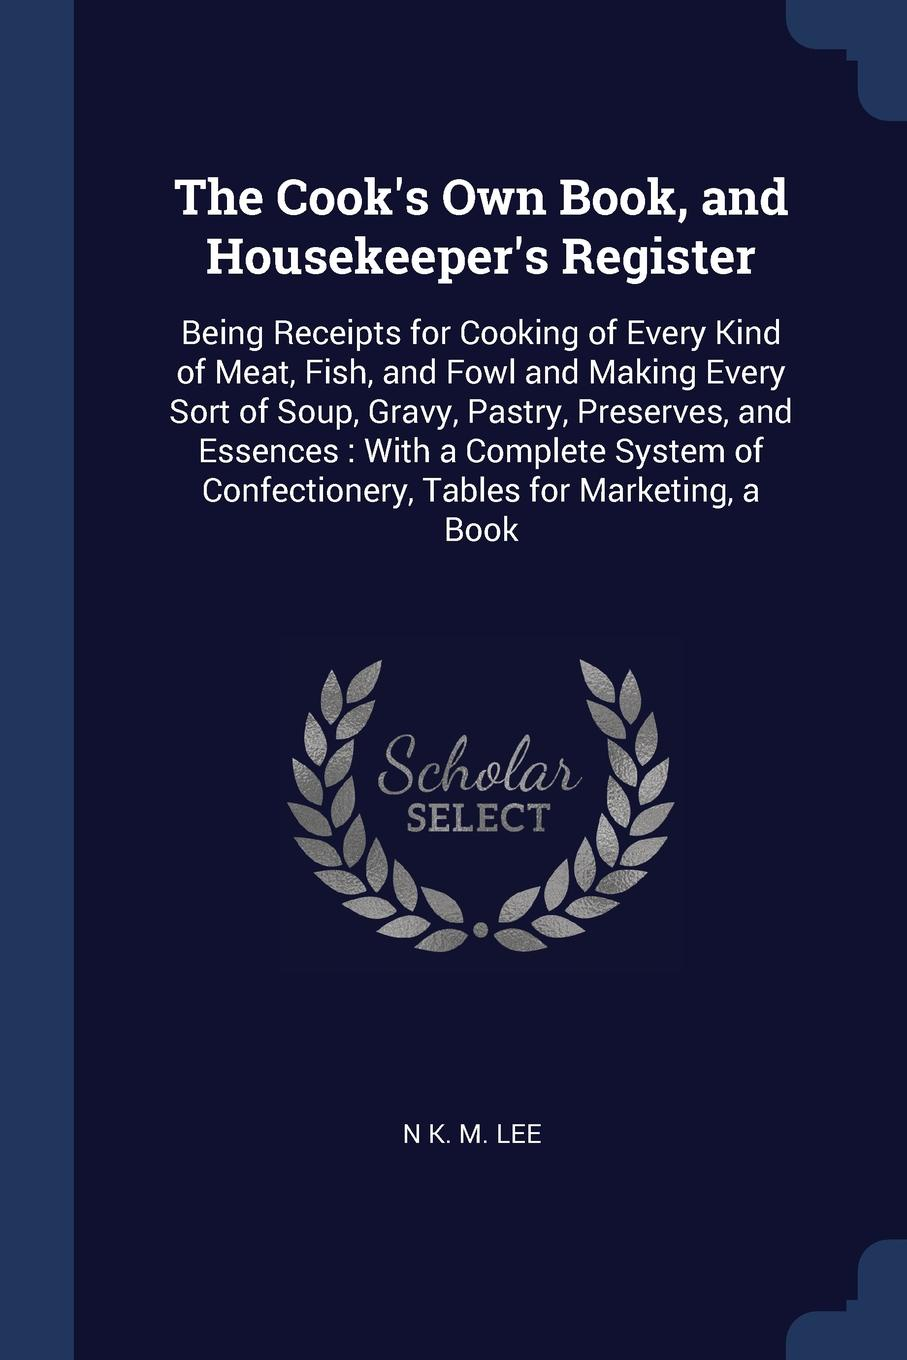 The Cook`s Own Book, and Housekeeper`s Register. Being Receipts for Cooking of Every Kind of Meat, Fish, and Fowl and Making Every Sort of Soup, Gravy, Pastry, Preserves, and Essences : With a Complete System of Confectionery, Tables for Marketing...